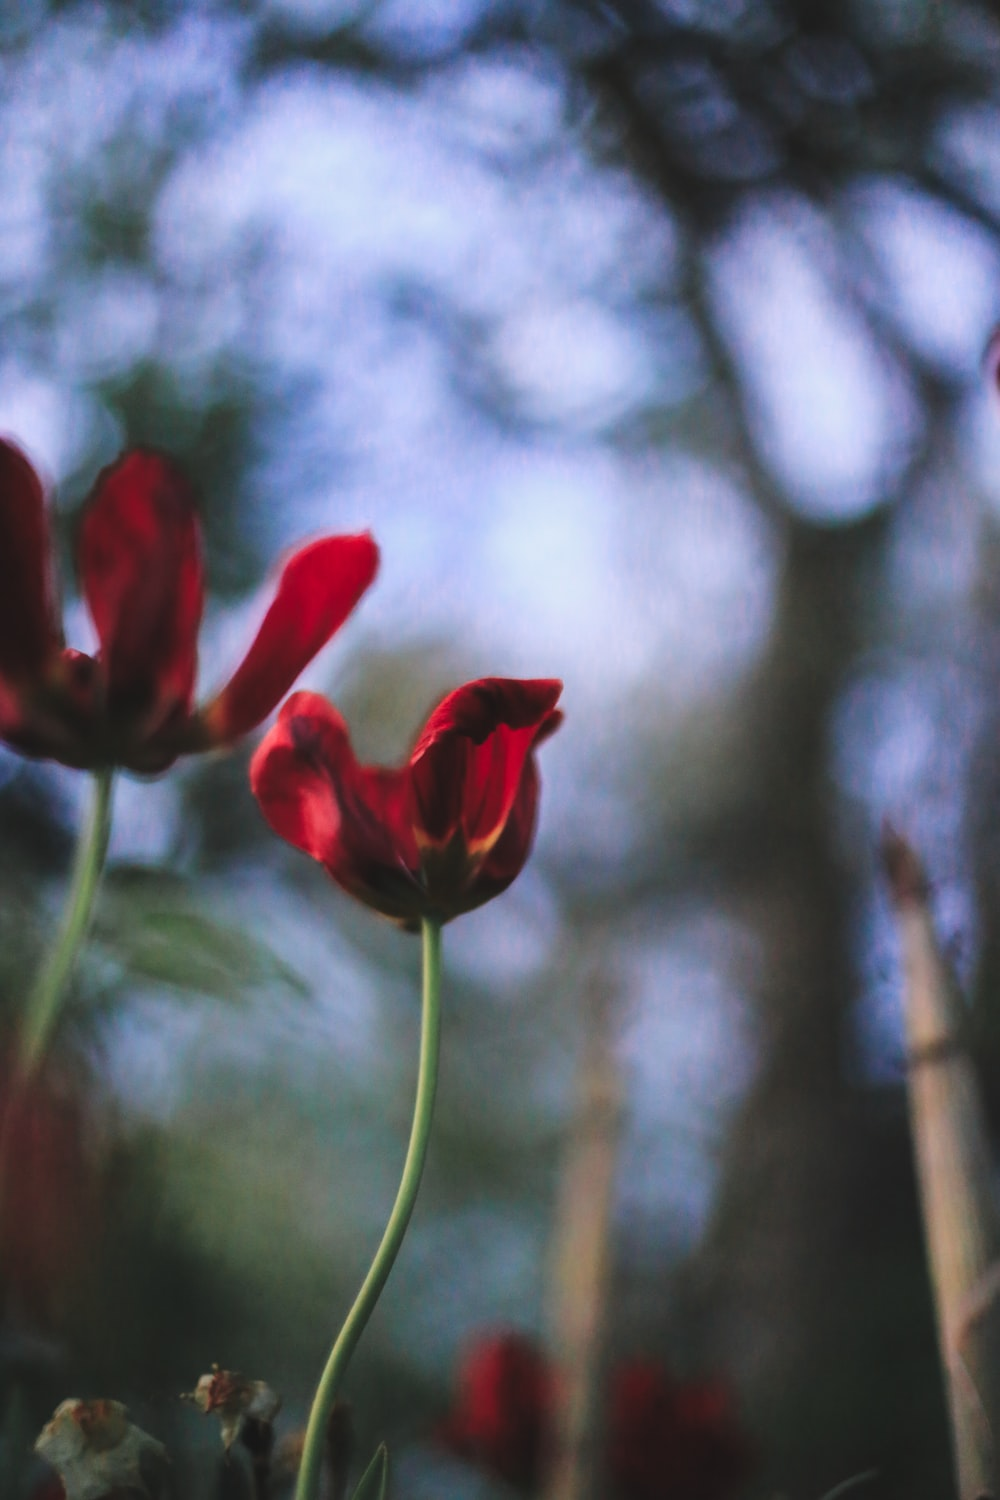 red flower in tilt shift lens